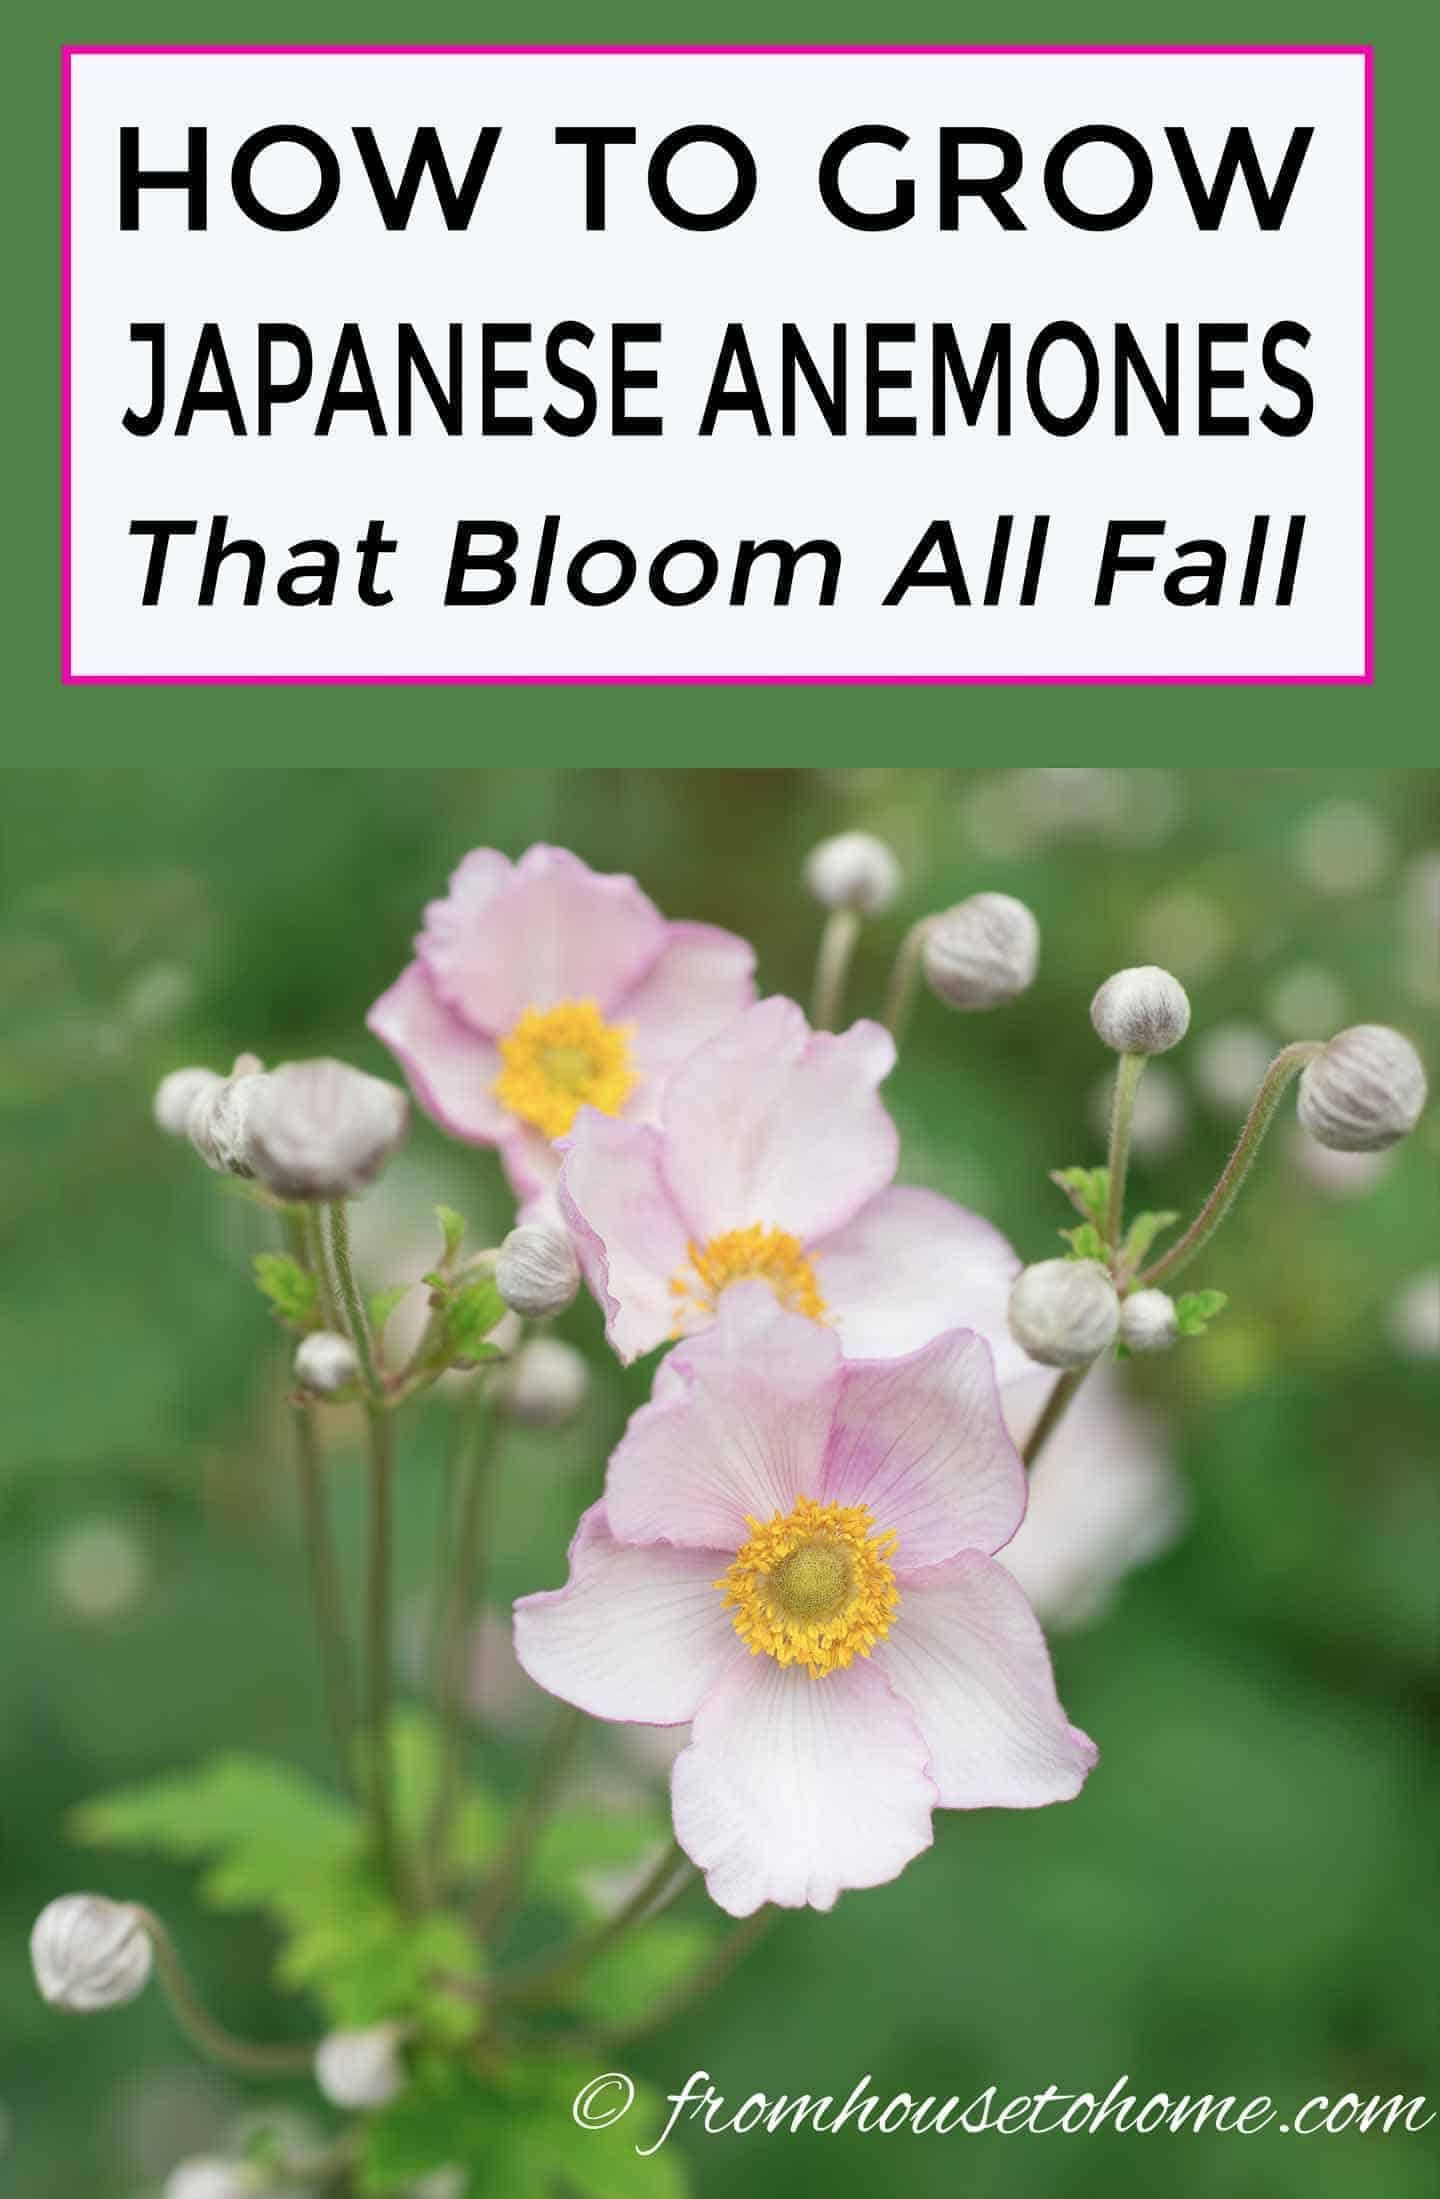 Japanese Anemones How To Grow And Care For These Fall Blooming Flowers Gardening From House To Home Japanese Anemone Part Shade Perennials Fall Blooming Flowers